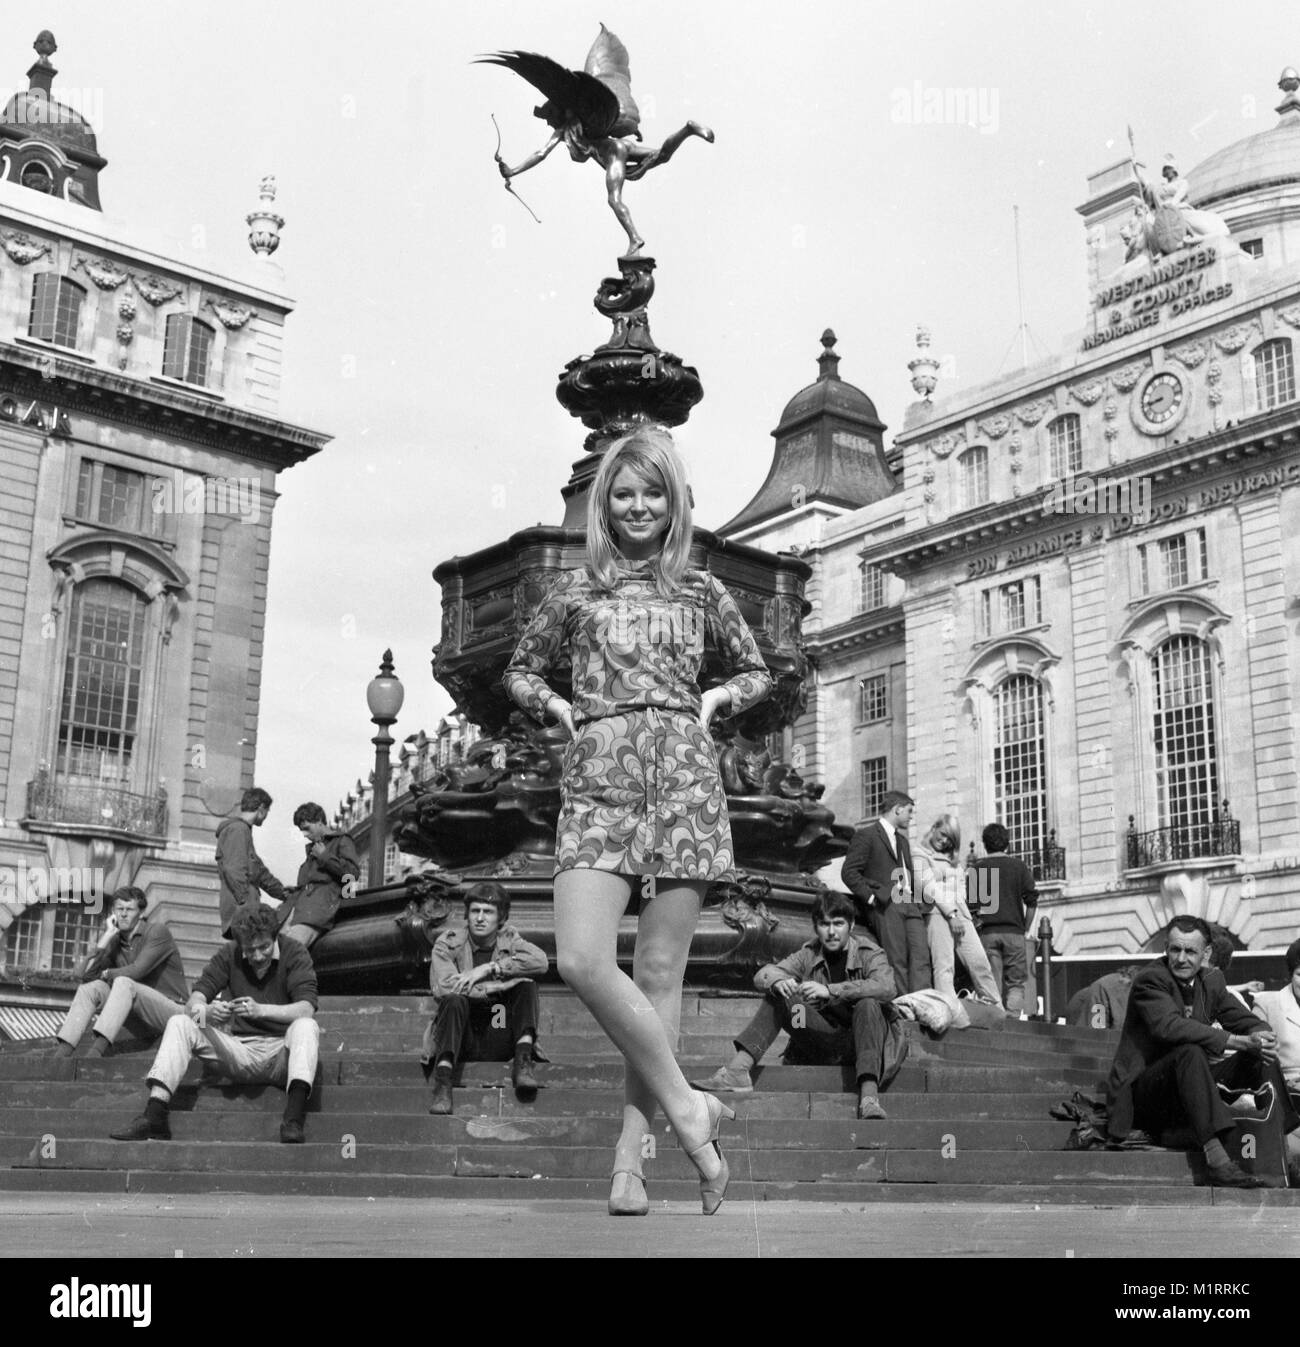 A model poses in a mini dress outdoors in London's Piccadilly near the statue of Eros in circa 1968 wearing a colourful mini-dress.   Photo by Tony Henshaw Stock Photo